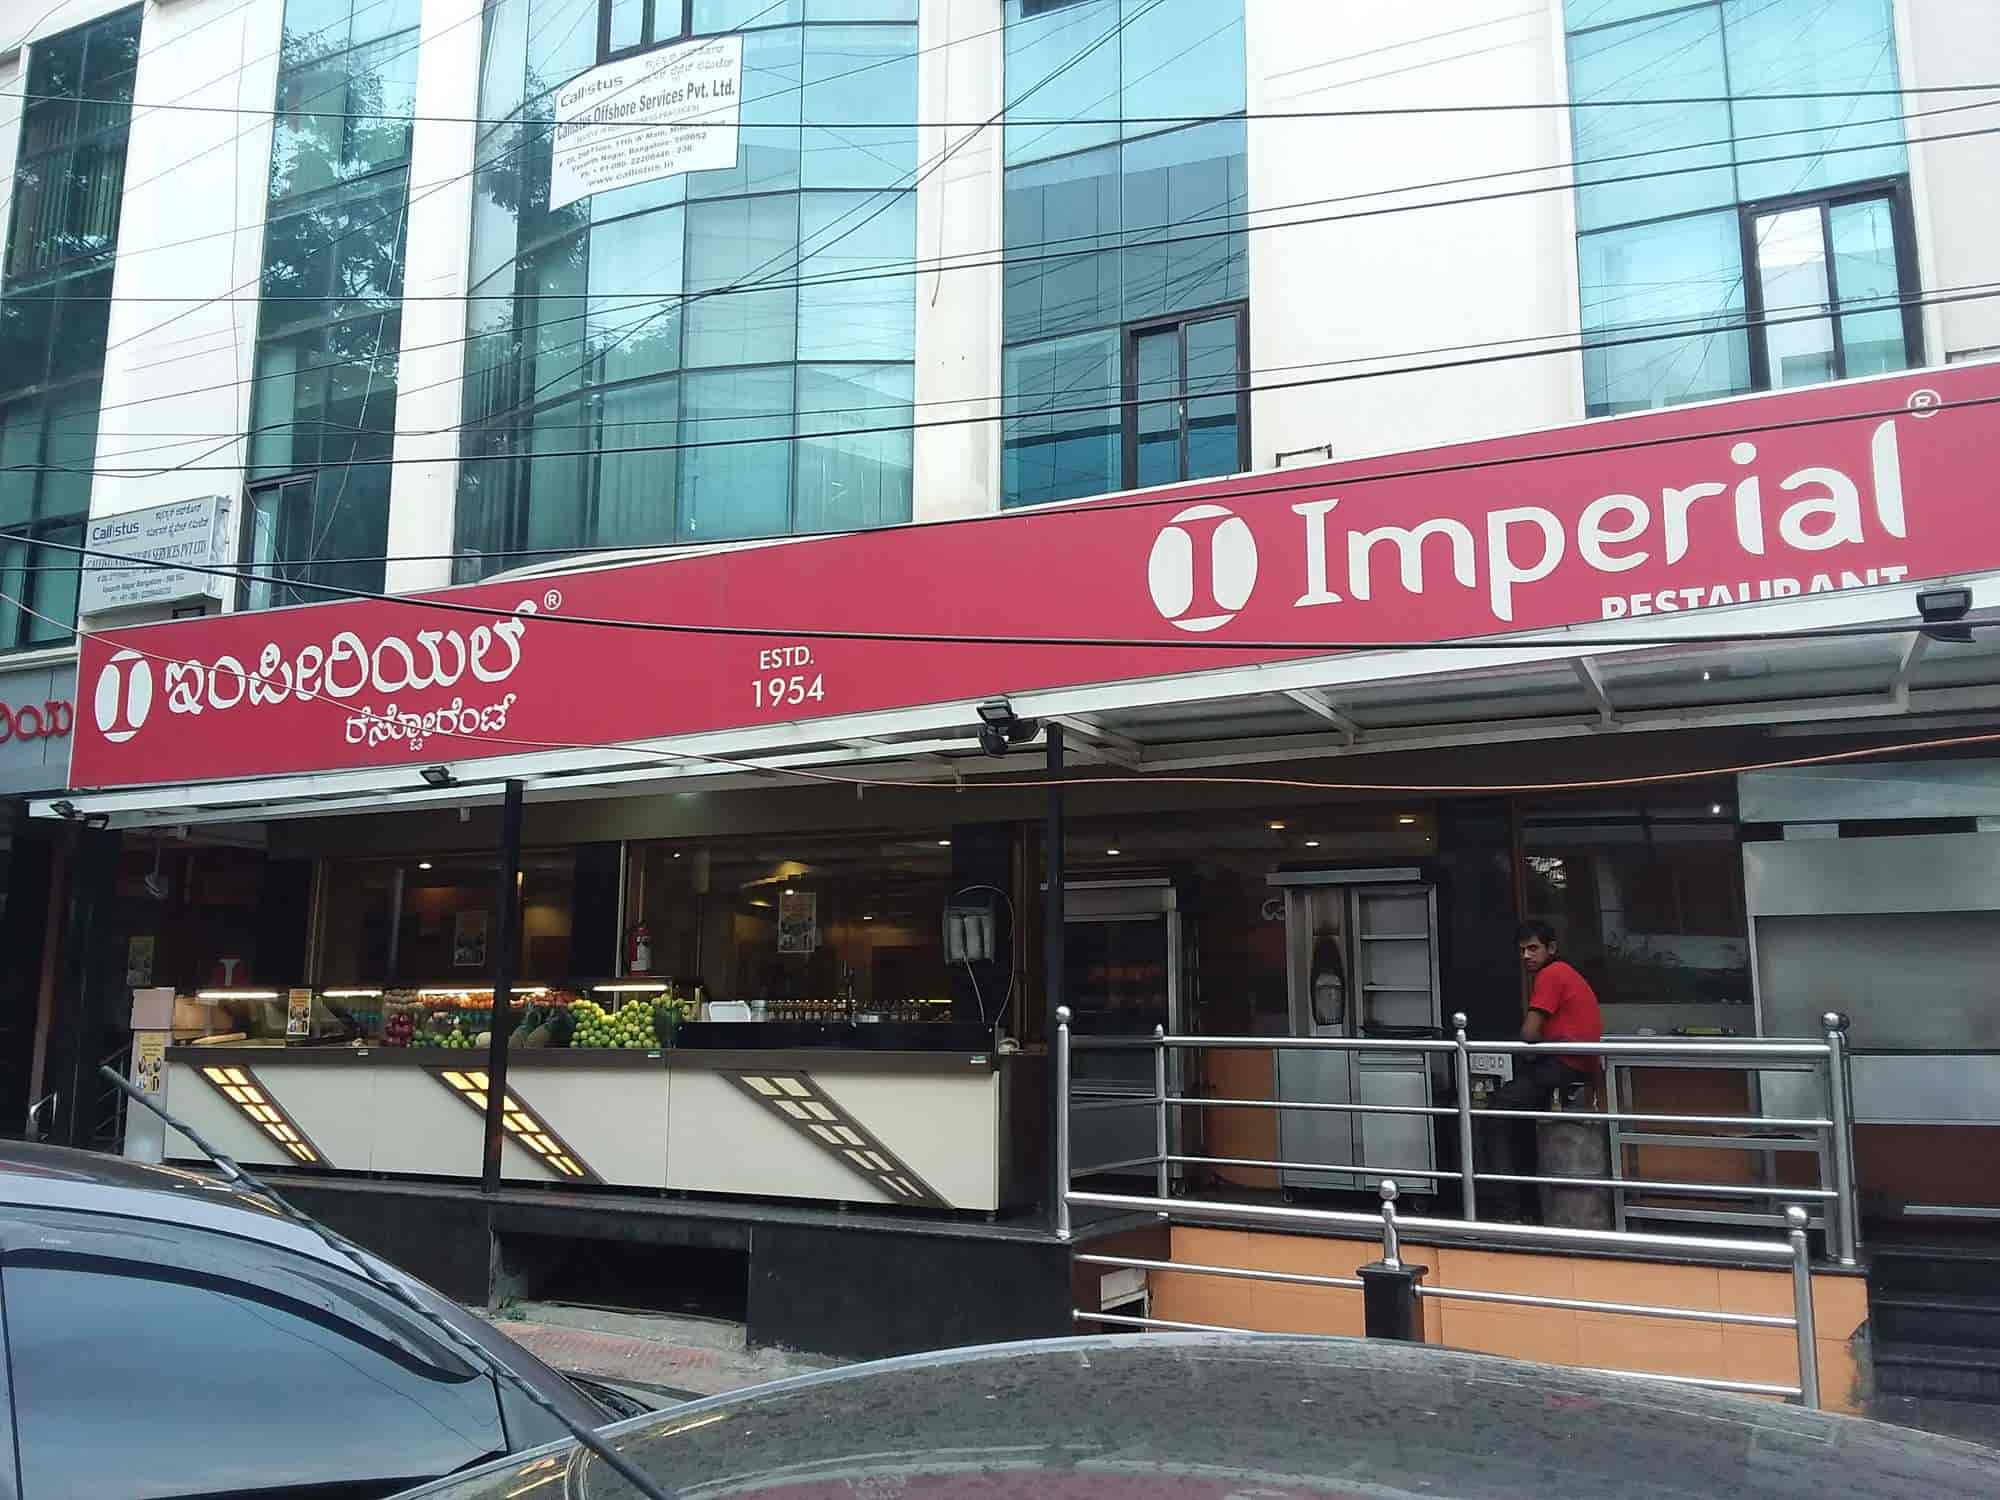 Imperial Restaurant Vasanth Nagar Bangalore North Indian Cuisine